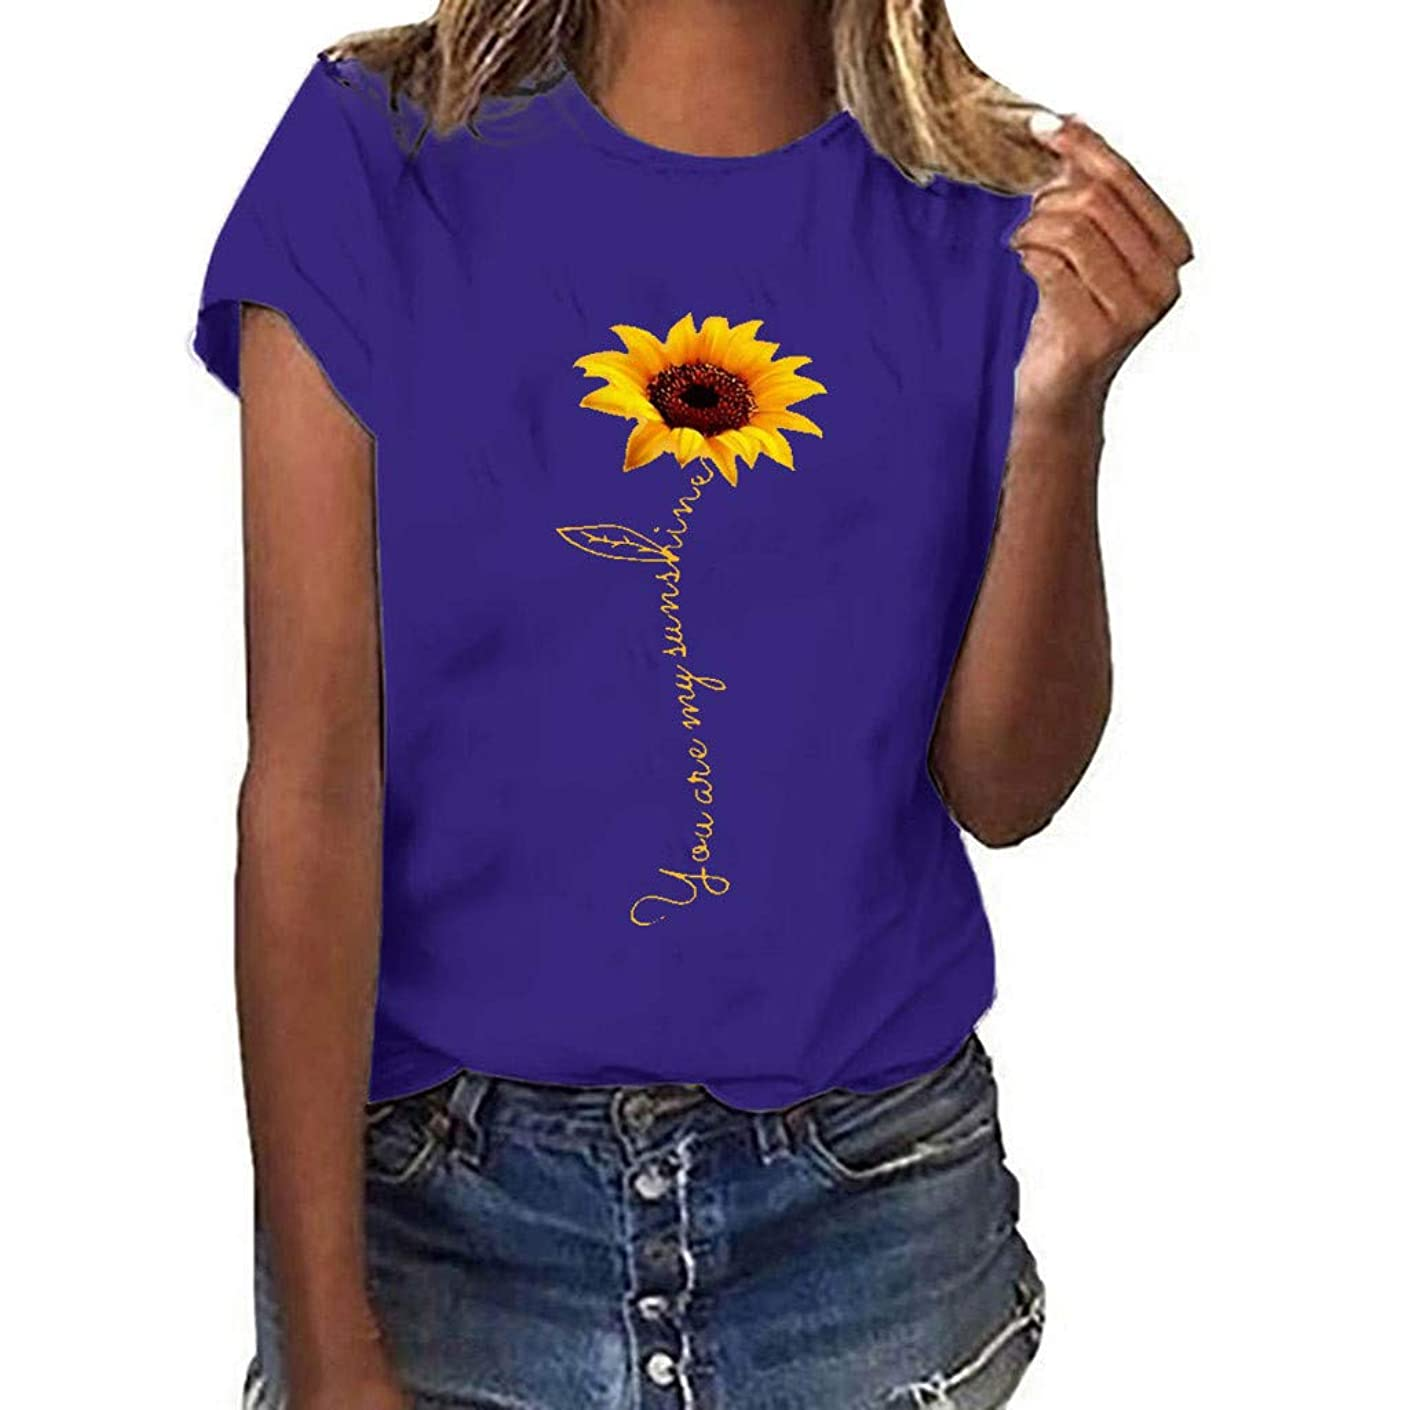 Londony?? Sunflower T-Shirt Women Cute Funny Graphic Tee Teen Girls Casual Short Sleeve Shirt Tops Summer T Shirt